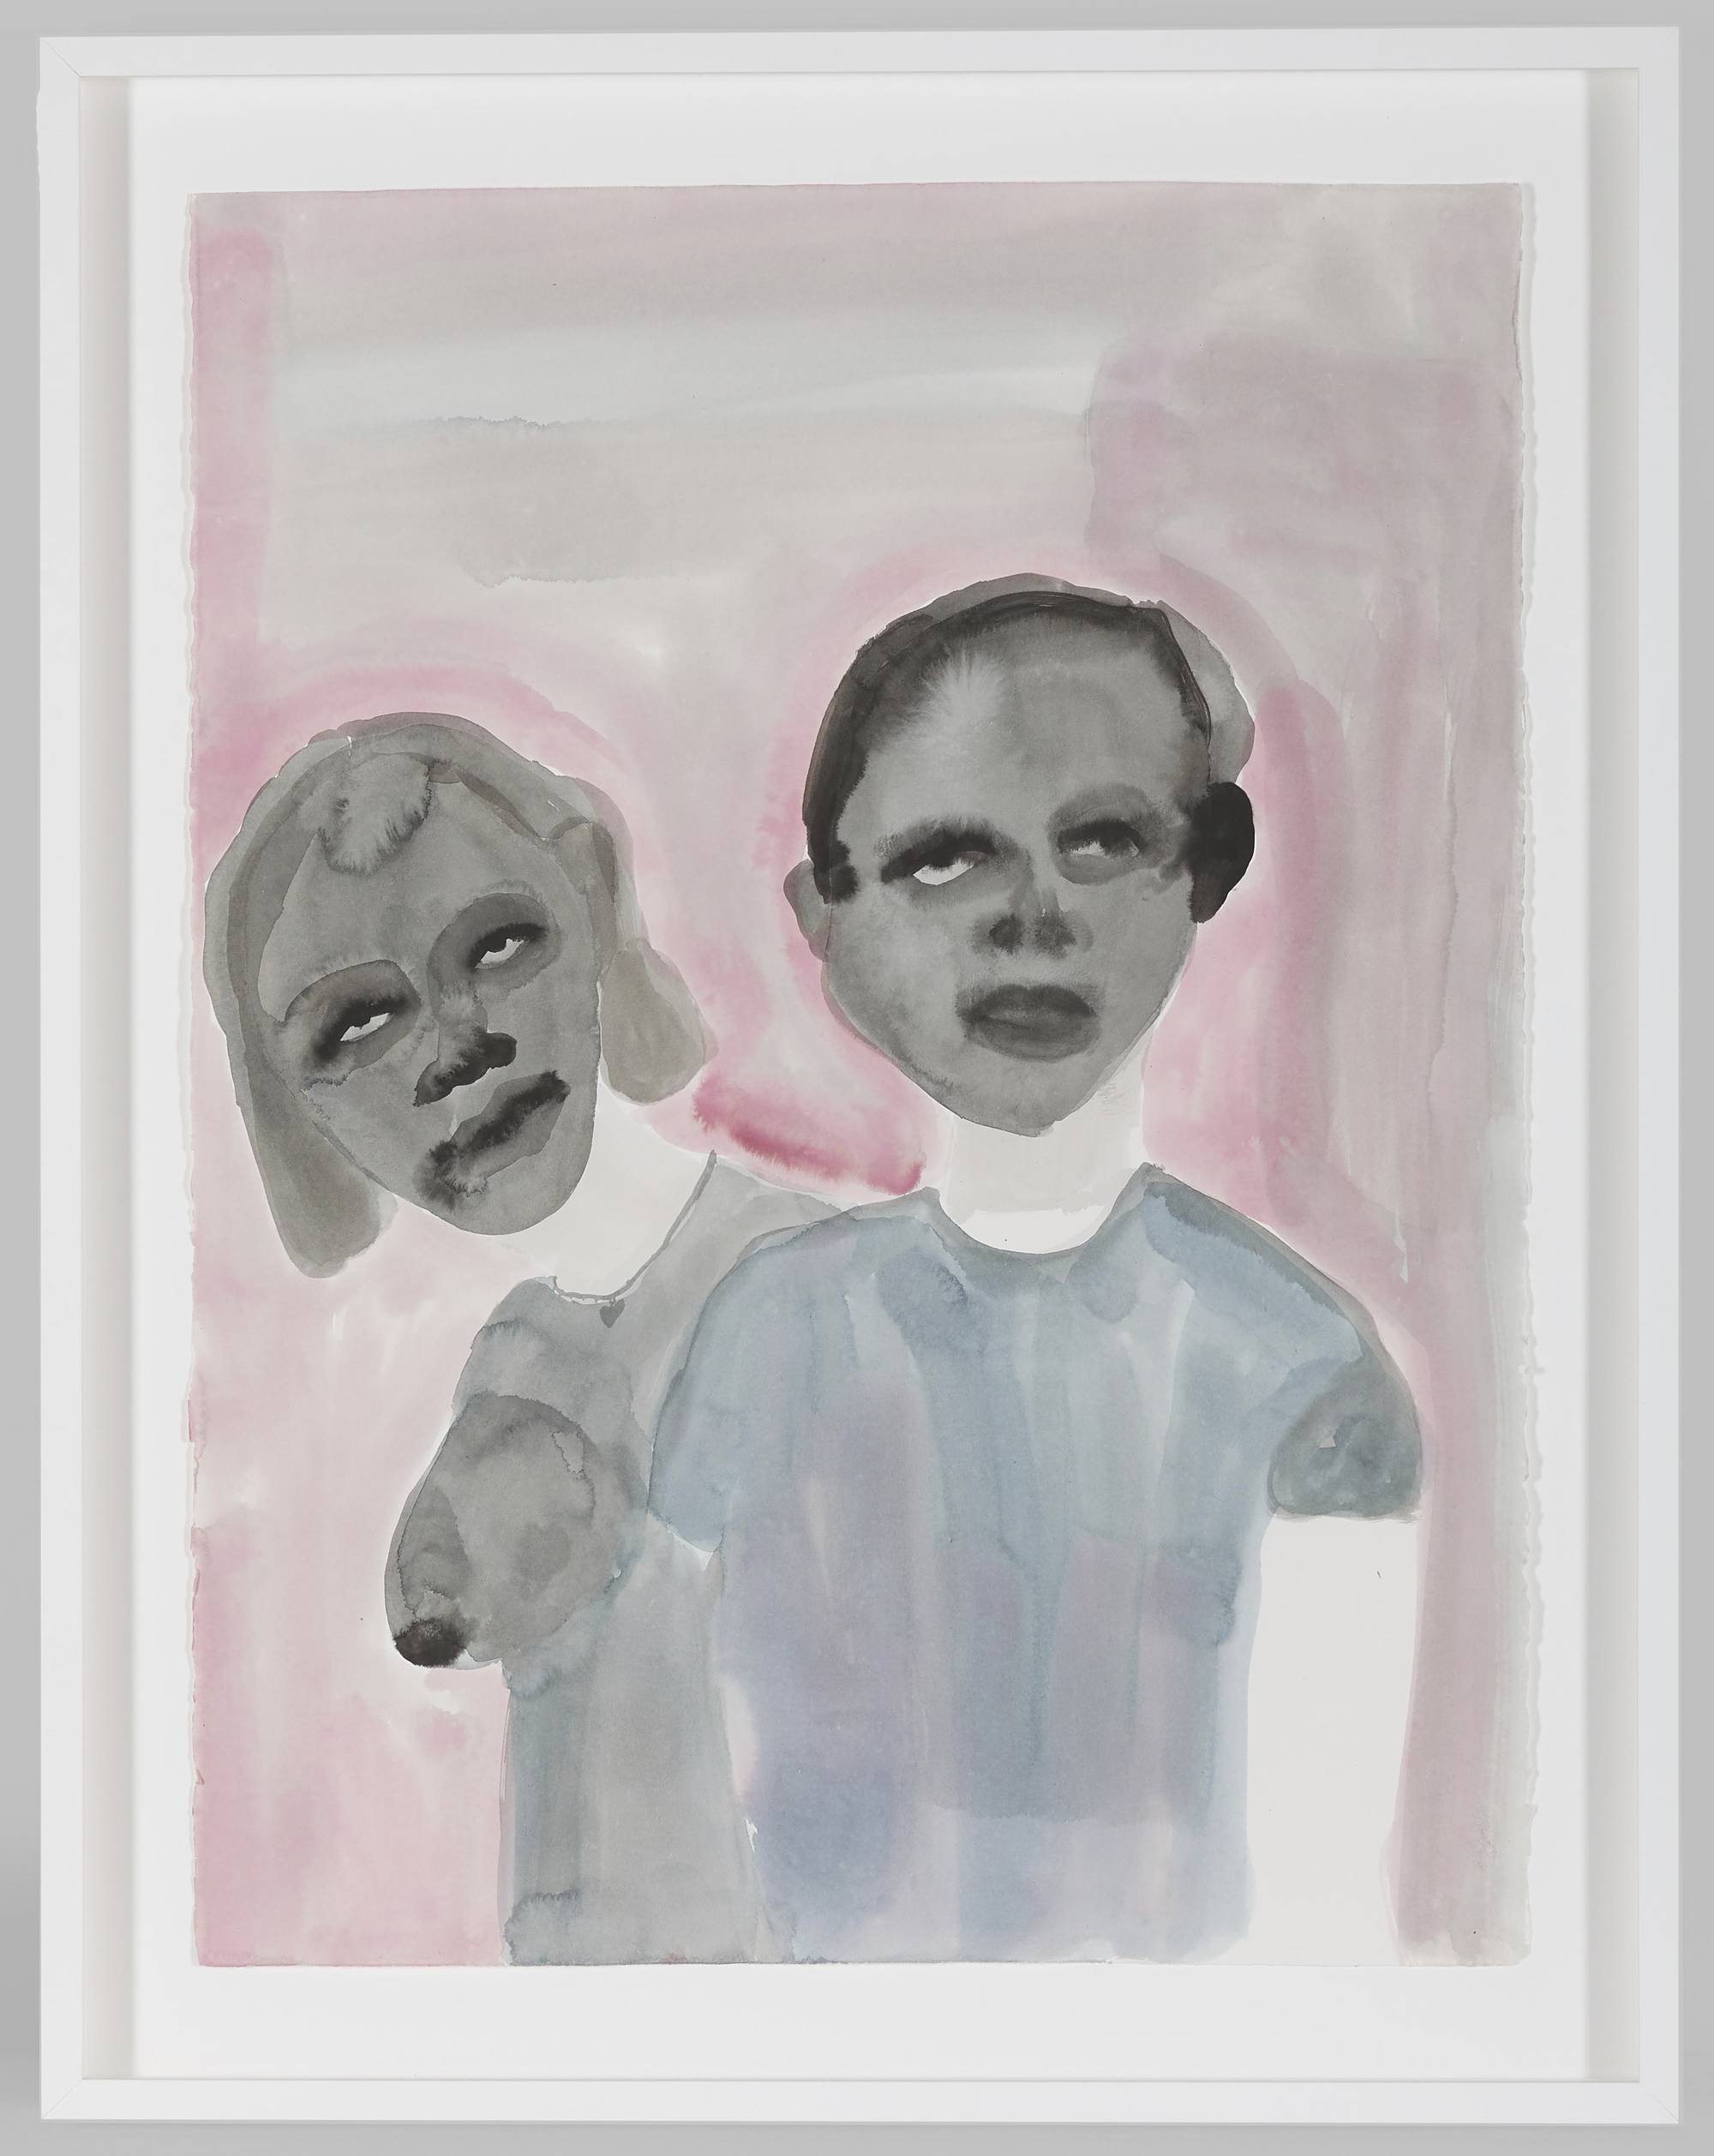 Image: Work by February James. It Takes More Than One Tool To Build A House, 2020, 30 x 22 inches. Watercolor and ink on paper. The upper bodies of two ghostly figures are rendered in gray tones of watercolor. They sit atop a pink background. The female figure on the left peeks out from behind male as they both gaze at the viewer. Image courtesy of the artist and Monique Meloche Gallery.